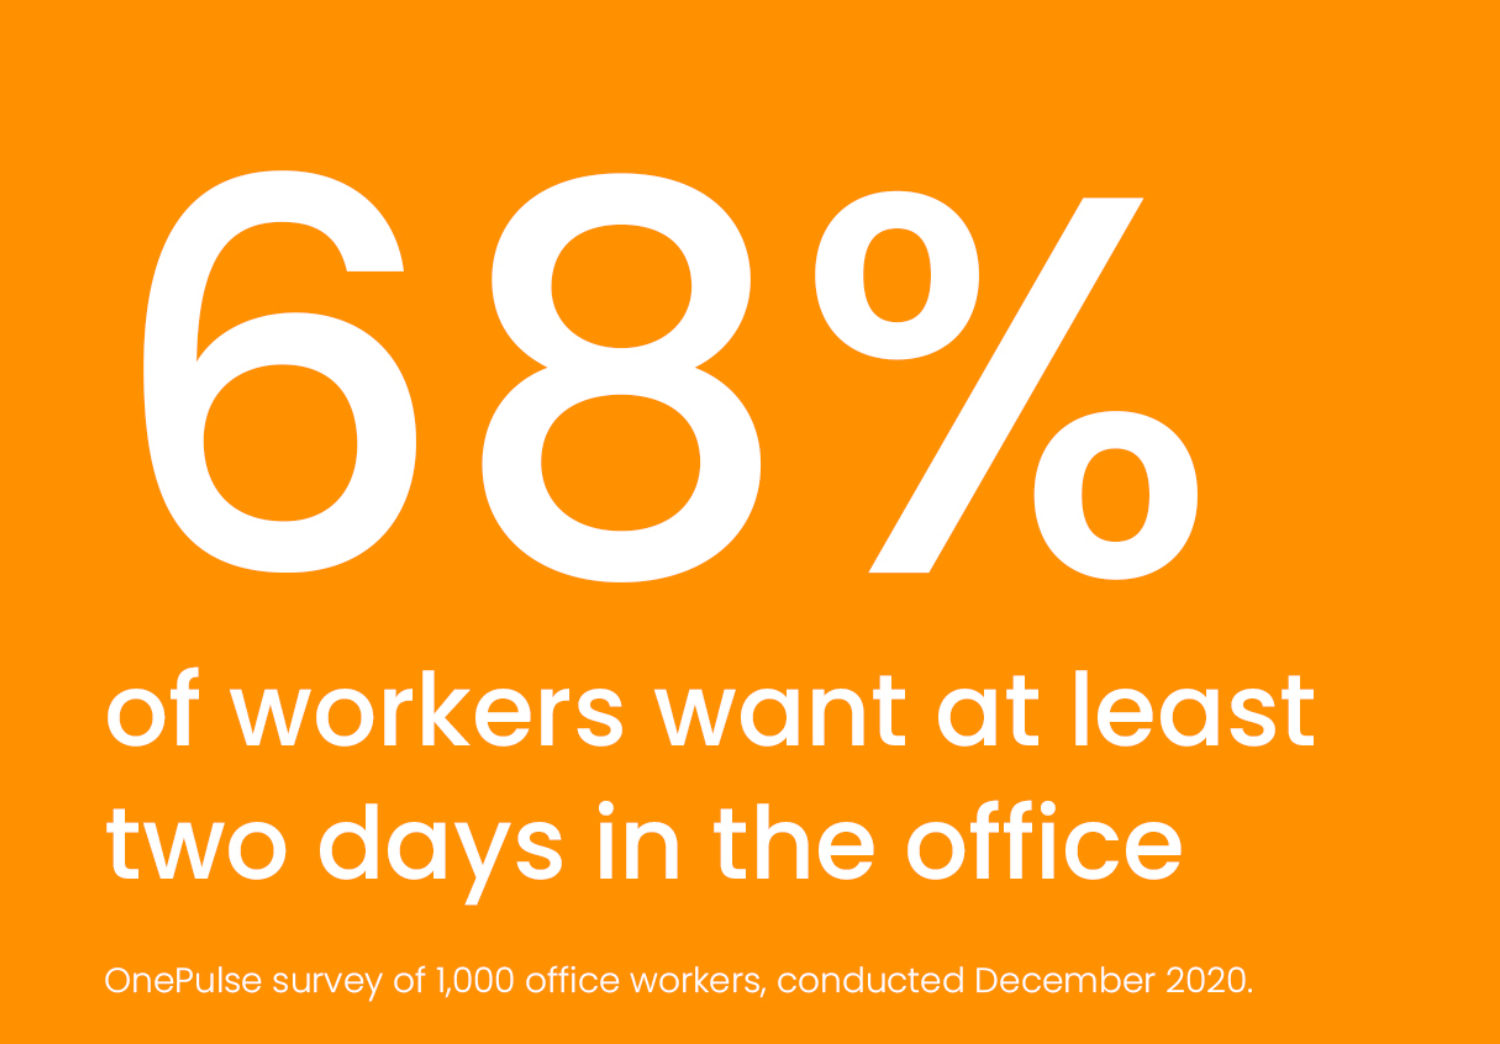 68% of workers want two days in office